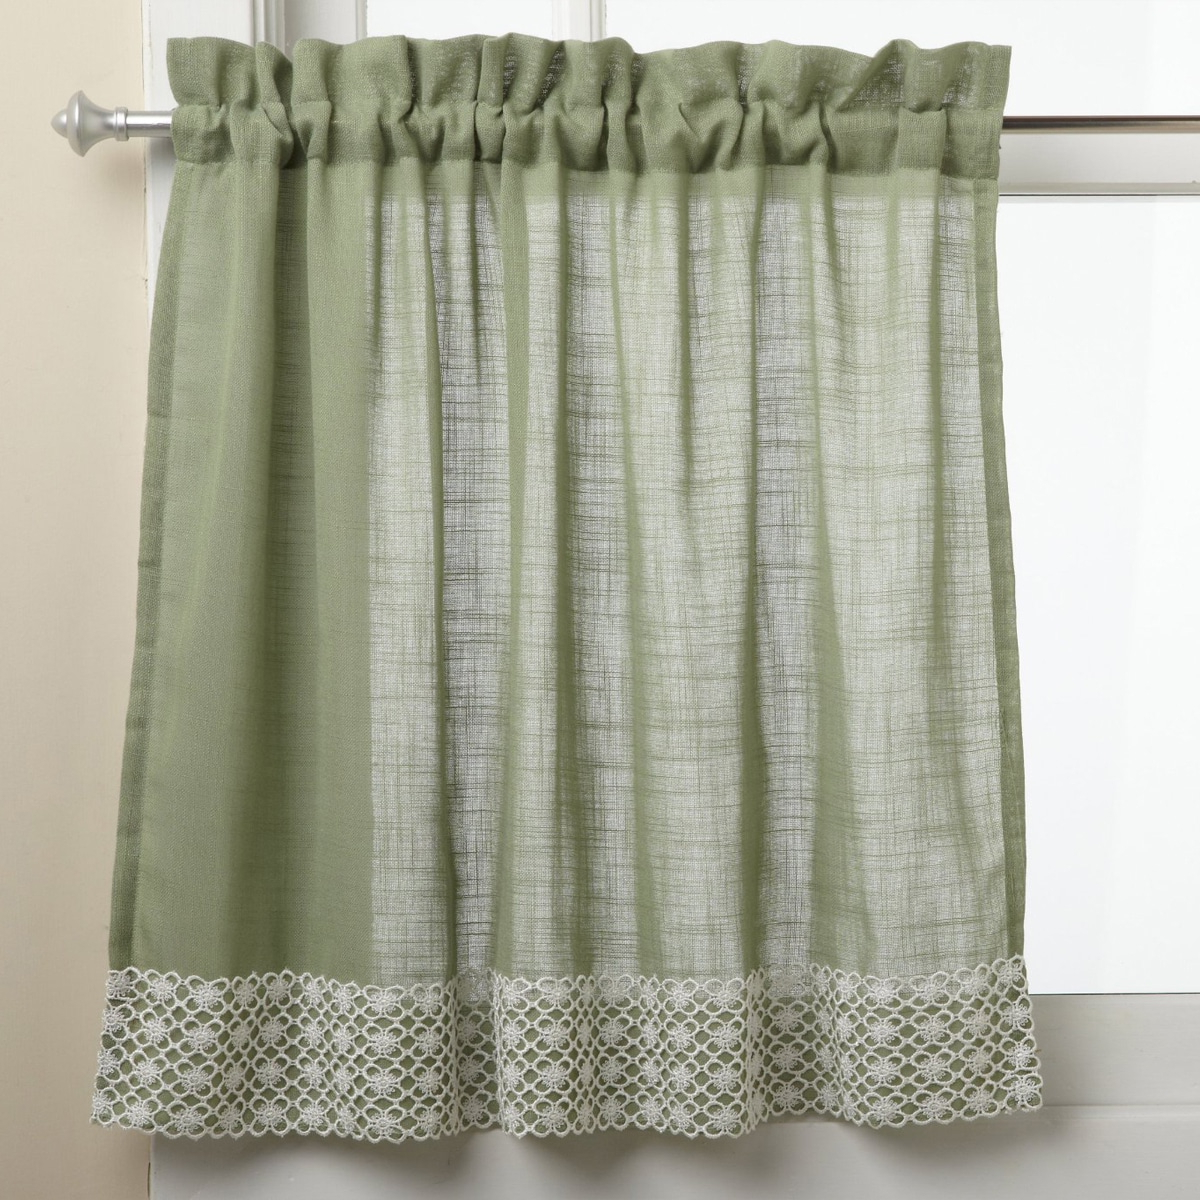 Trendy Country Style Curtain Parts With White Daisy Lace Accent With Sweet Home Collection Sage Country Style White Daisy Lace (View 4 of 20)